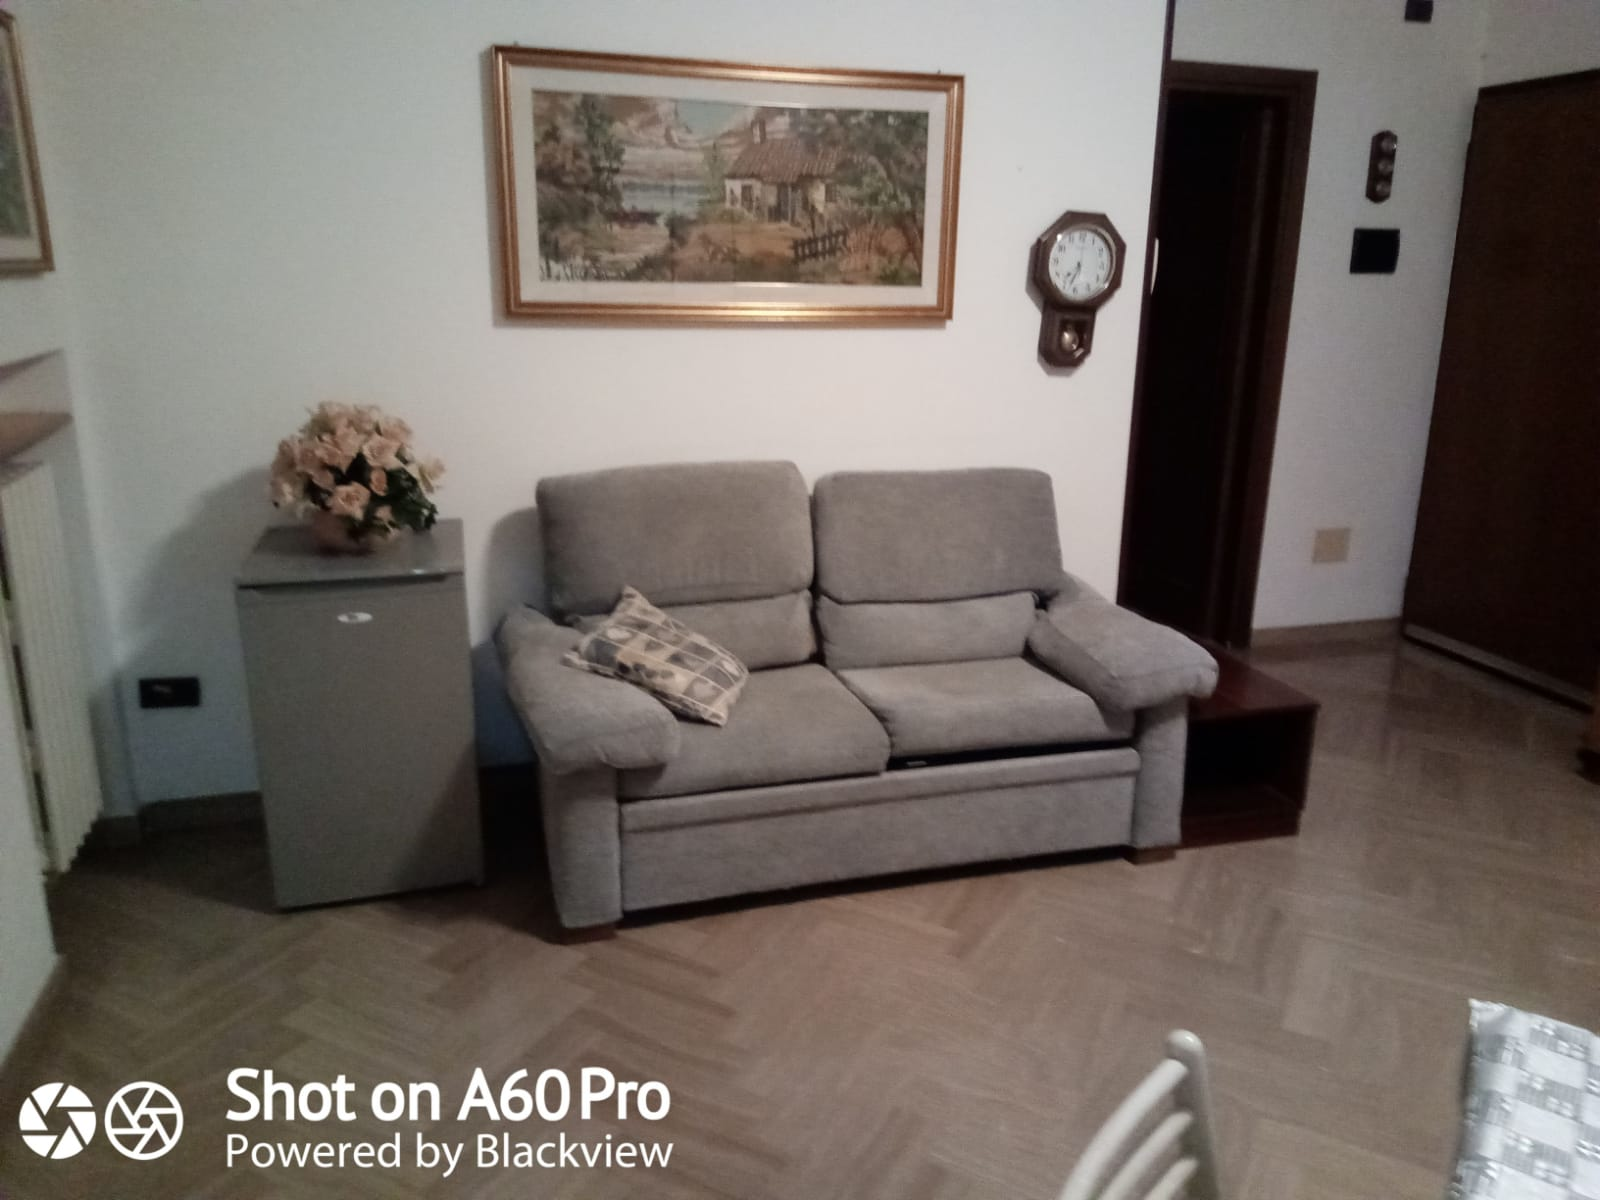 aam 561 Bivano Via Prov.Lecce/Small Flat with car space Br Town